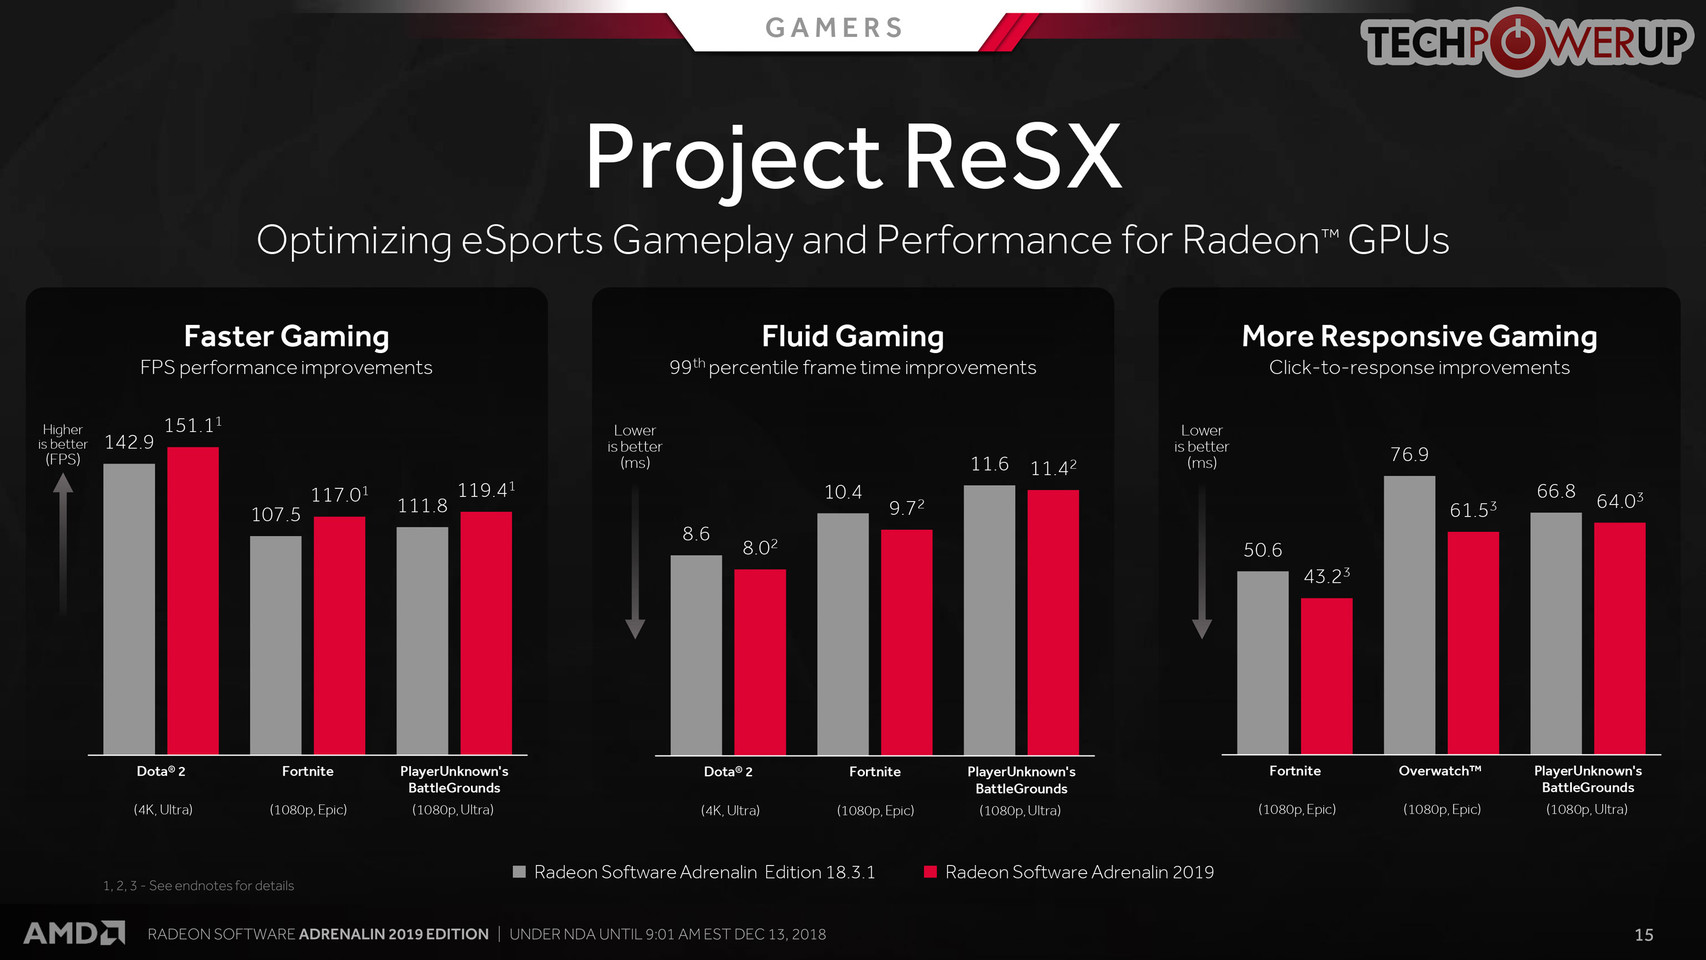 AMD Radeon Software Adrenalin 2019 Launched, Here's What's New